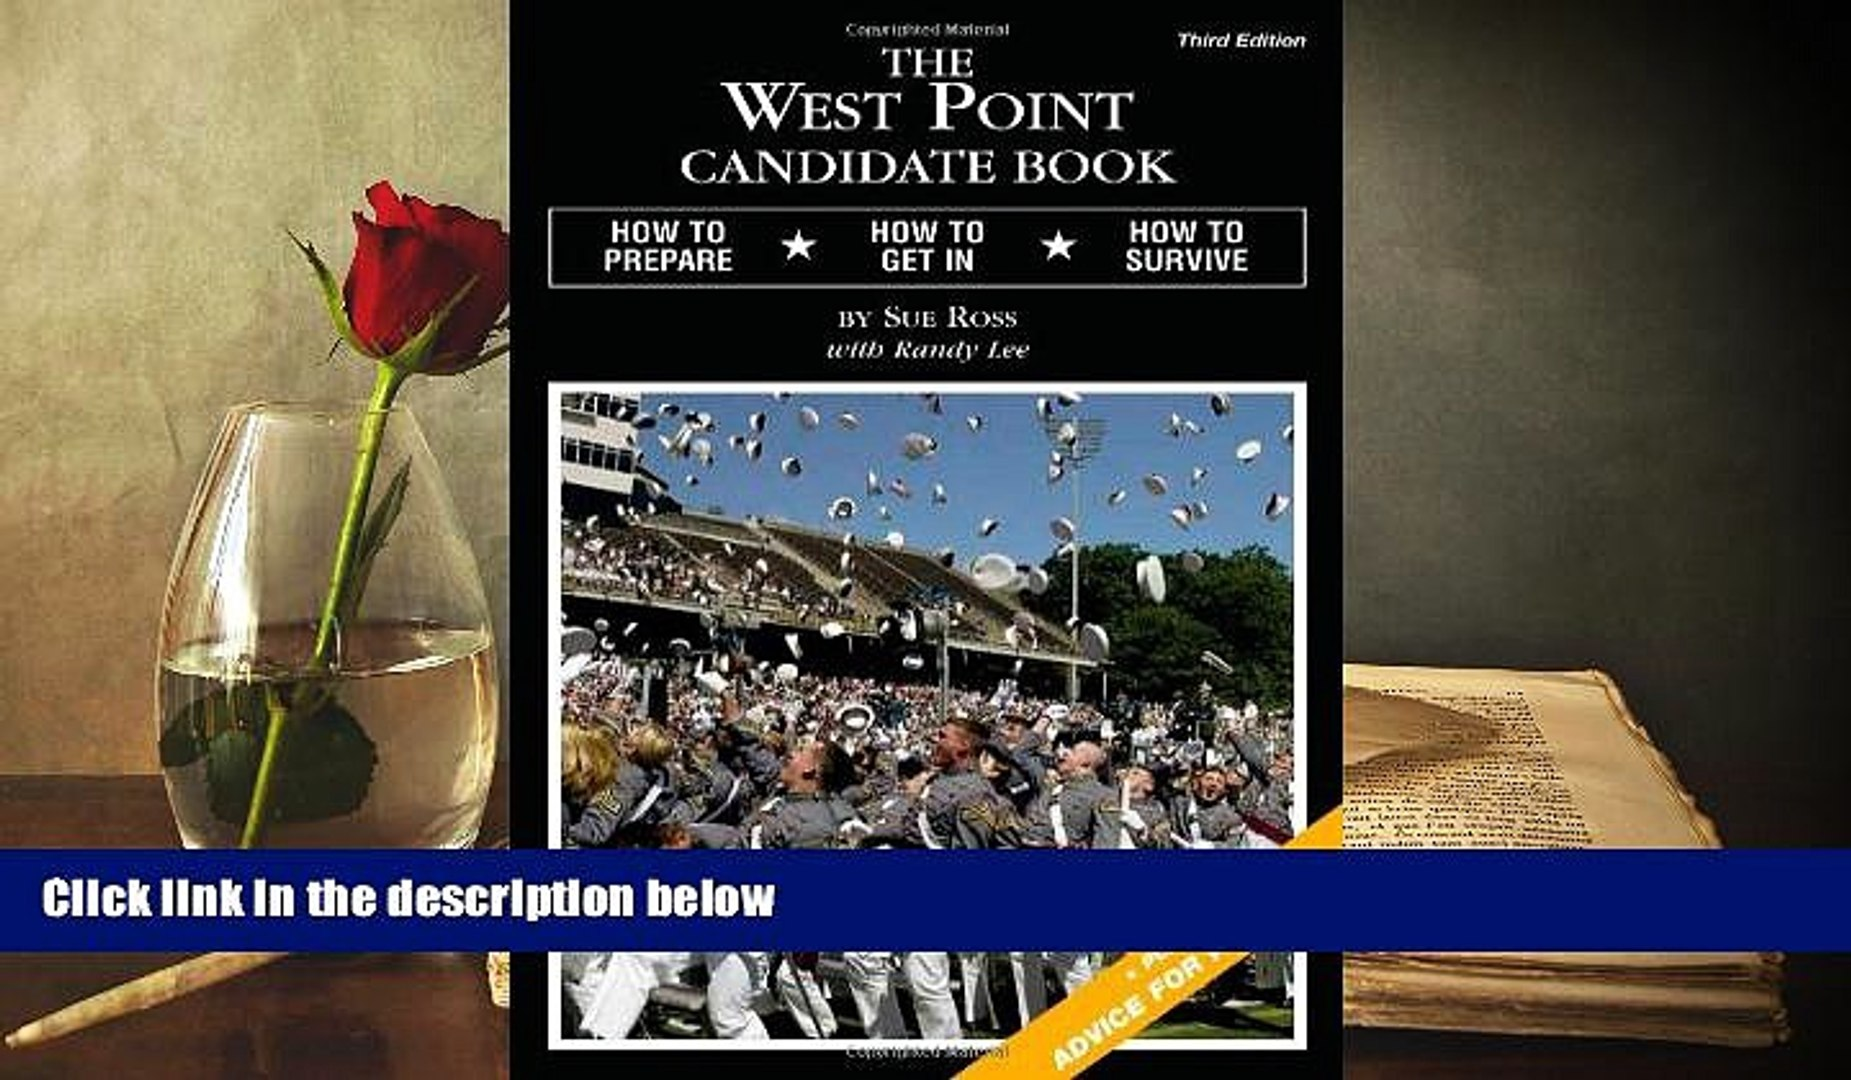 PDF [Free] Download  The West Point Candidate Book: How to Prepare, How to Get In, How to Survive